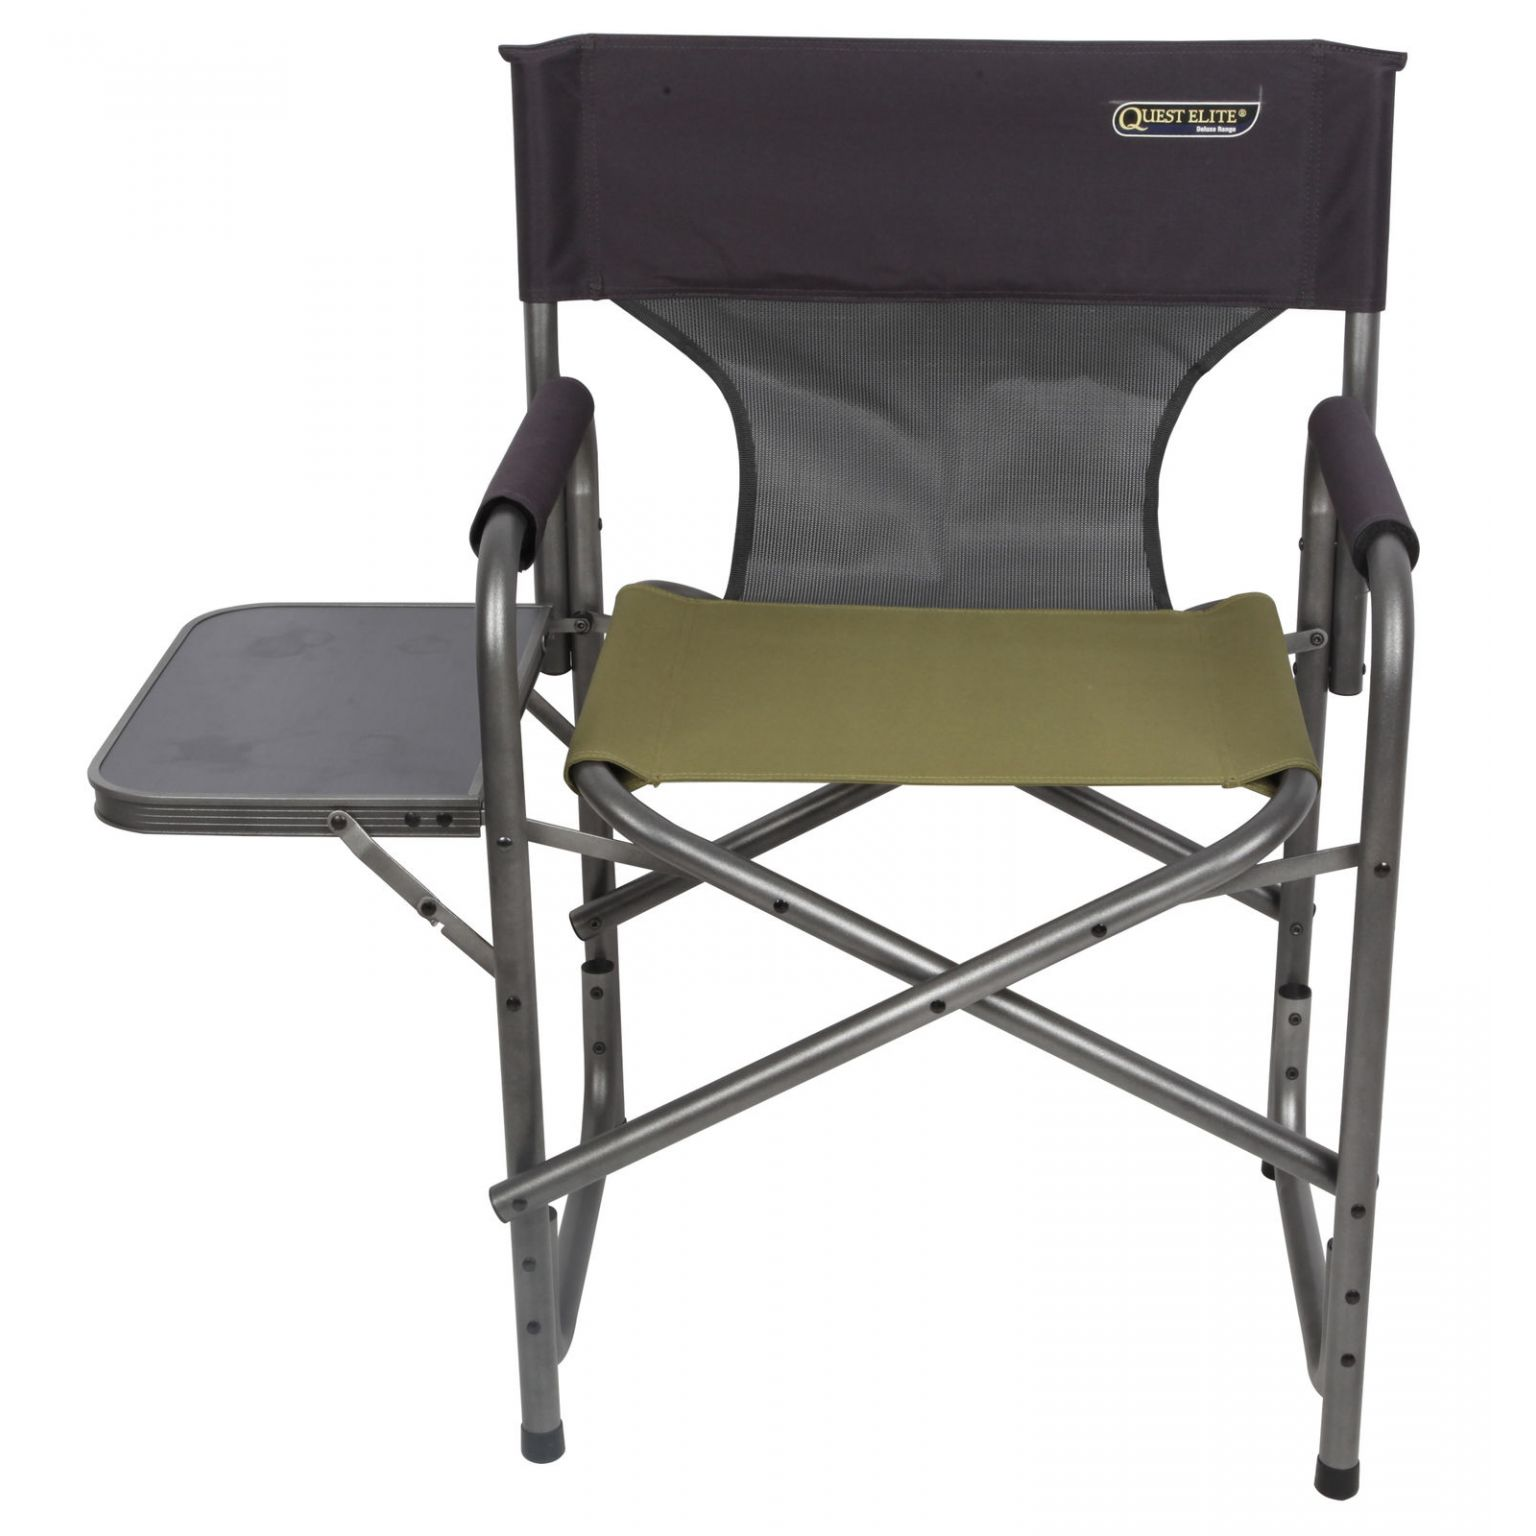 Folding Camp Chair With Side Table Quest Elite Surrey Deluxe Folding Sage Camping Chair